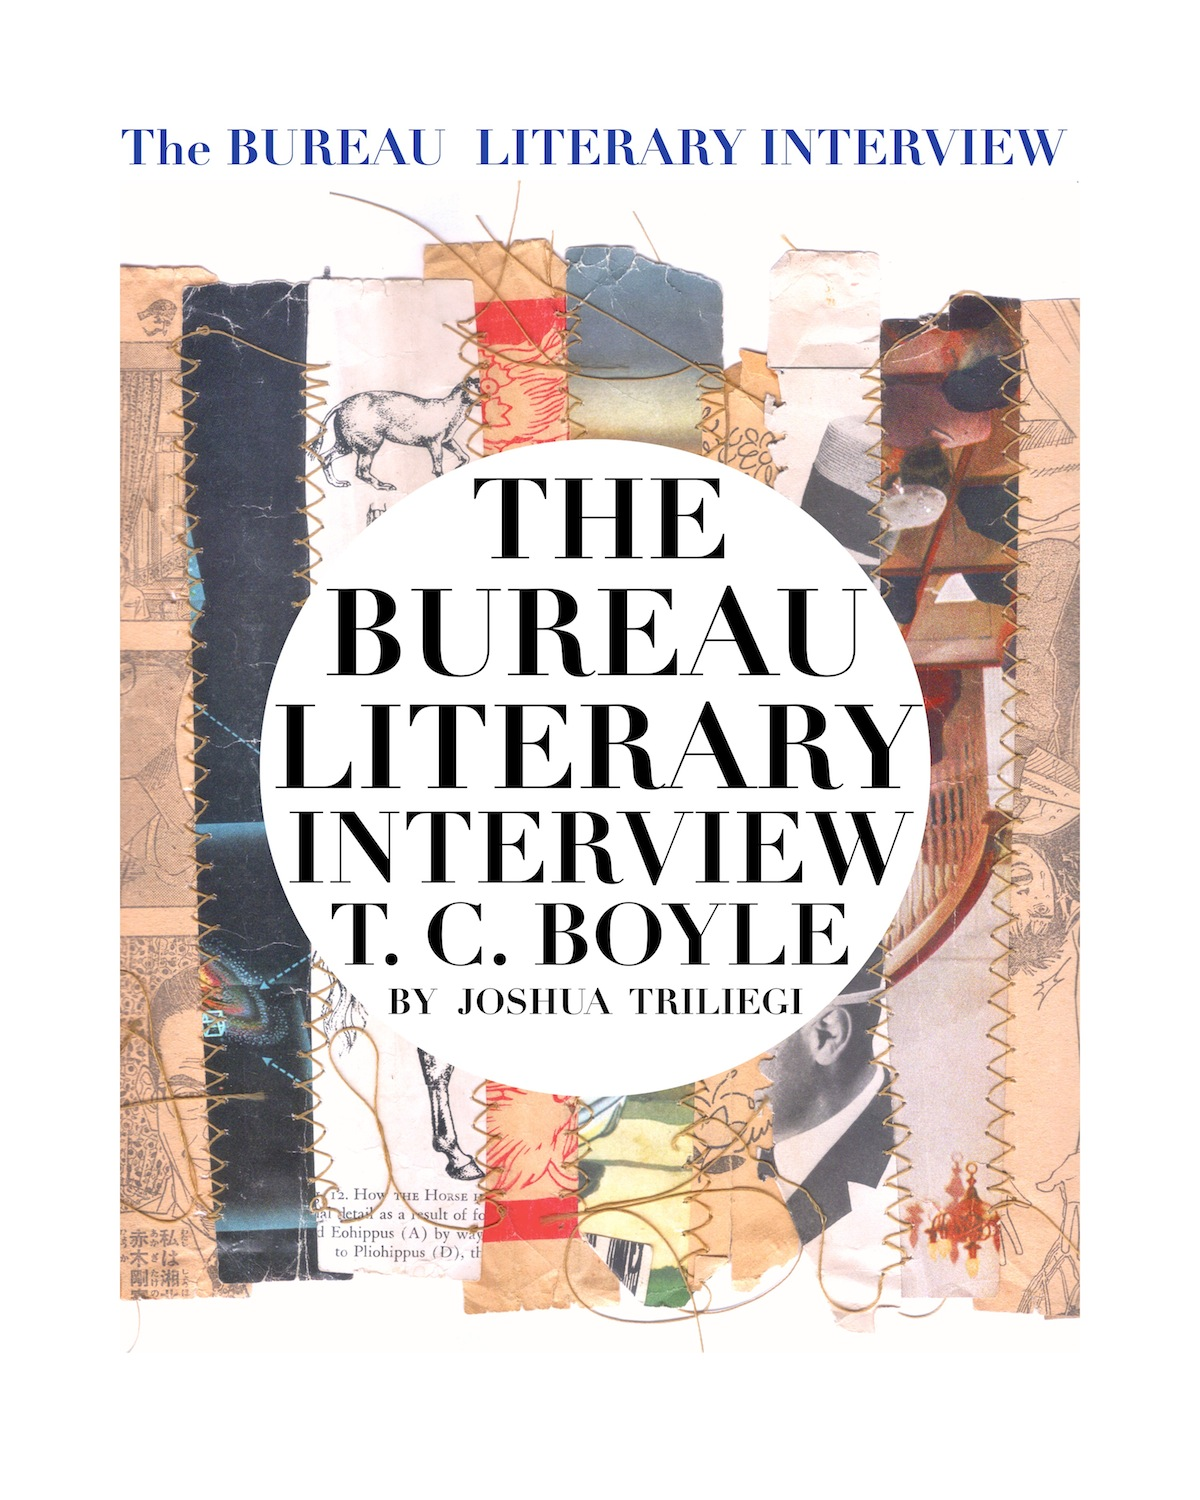 T.C. BOYLE : The NOVELIST